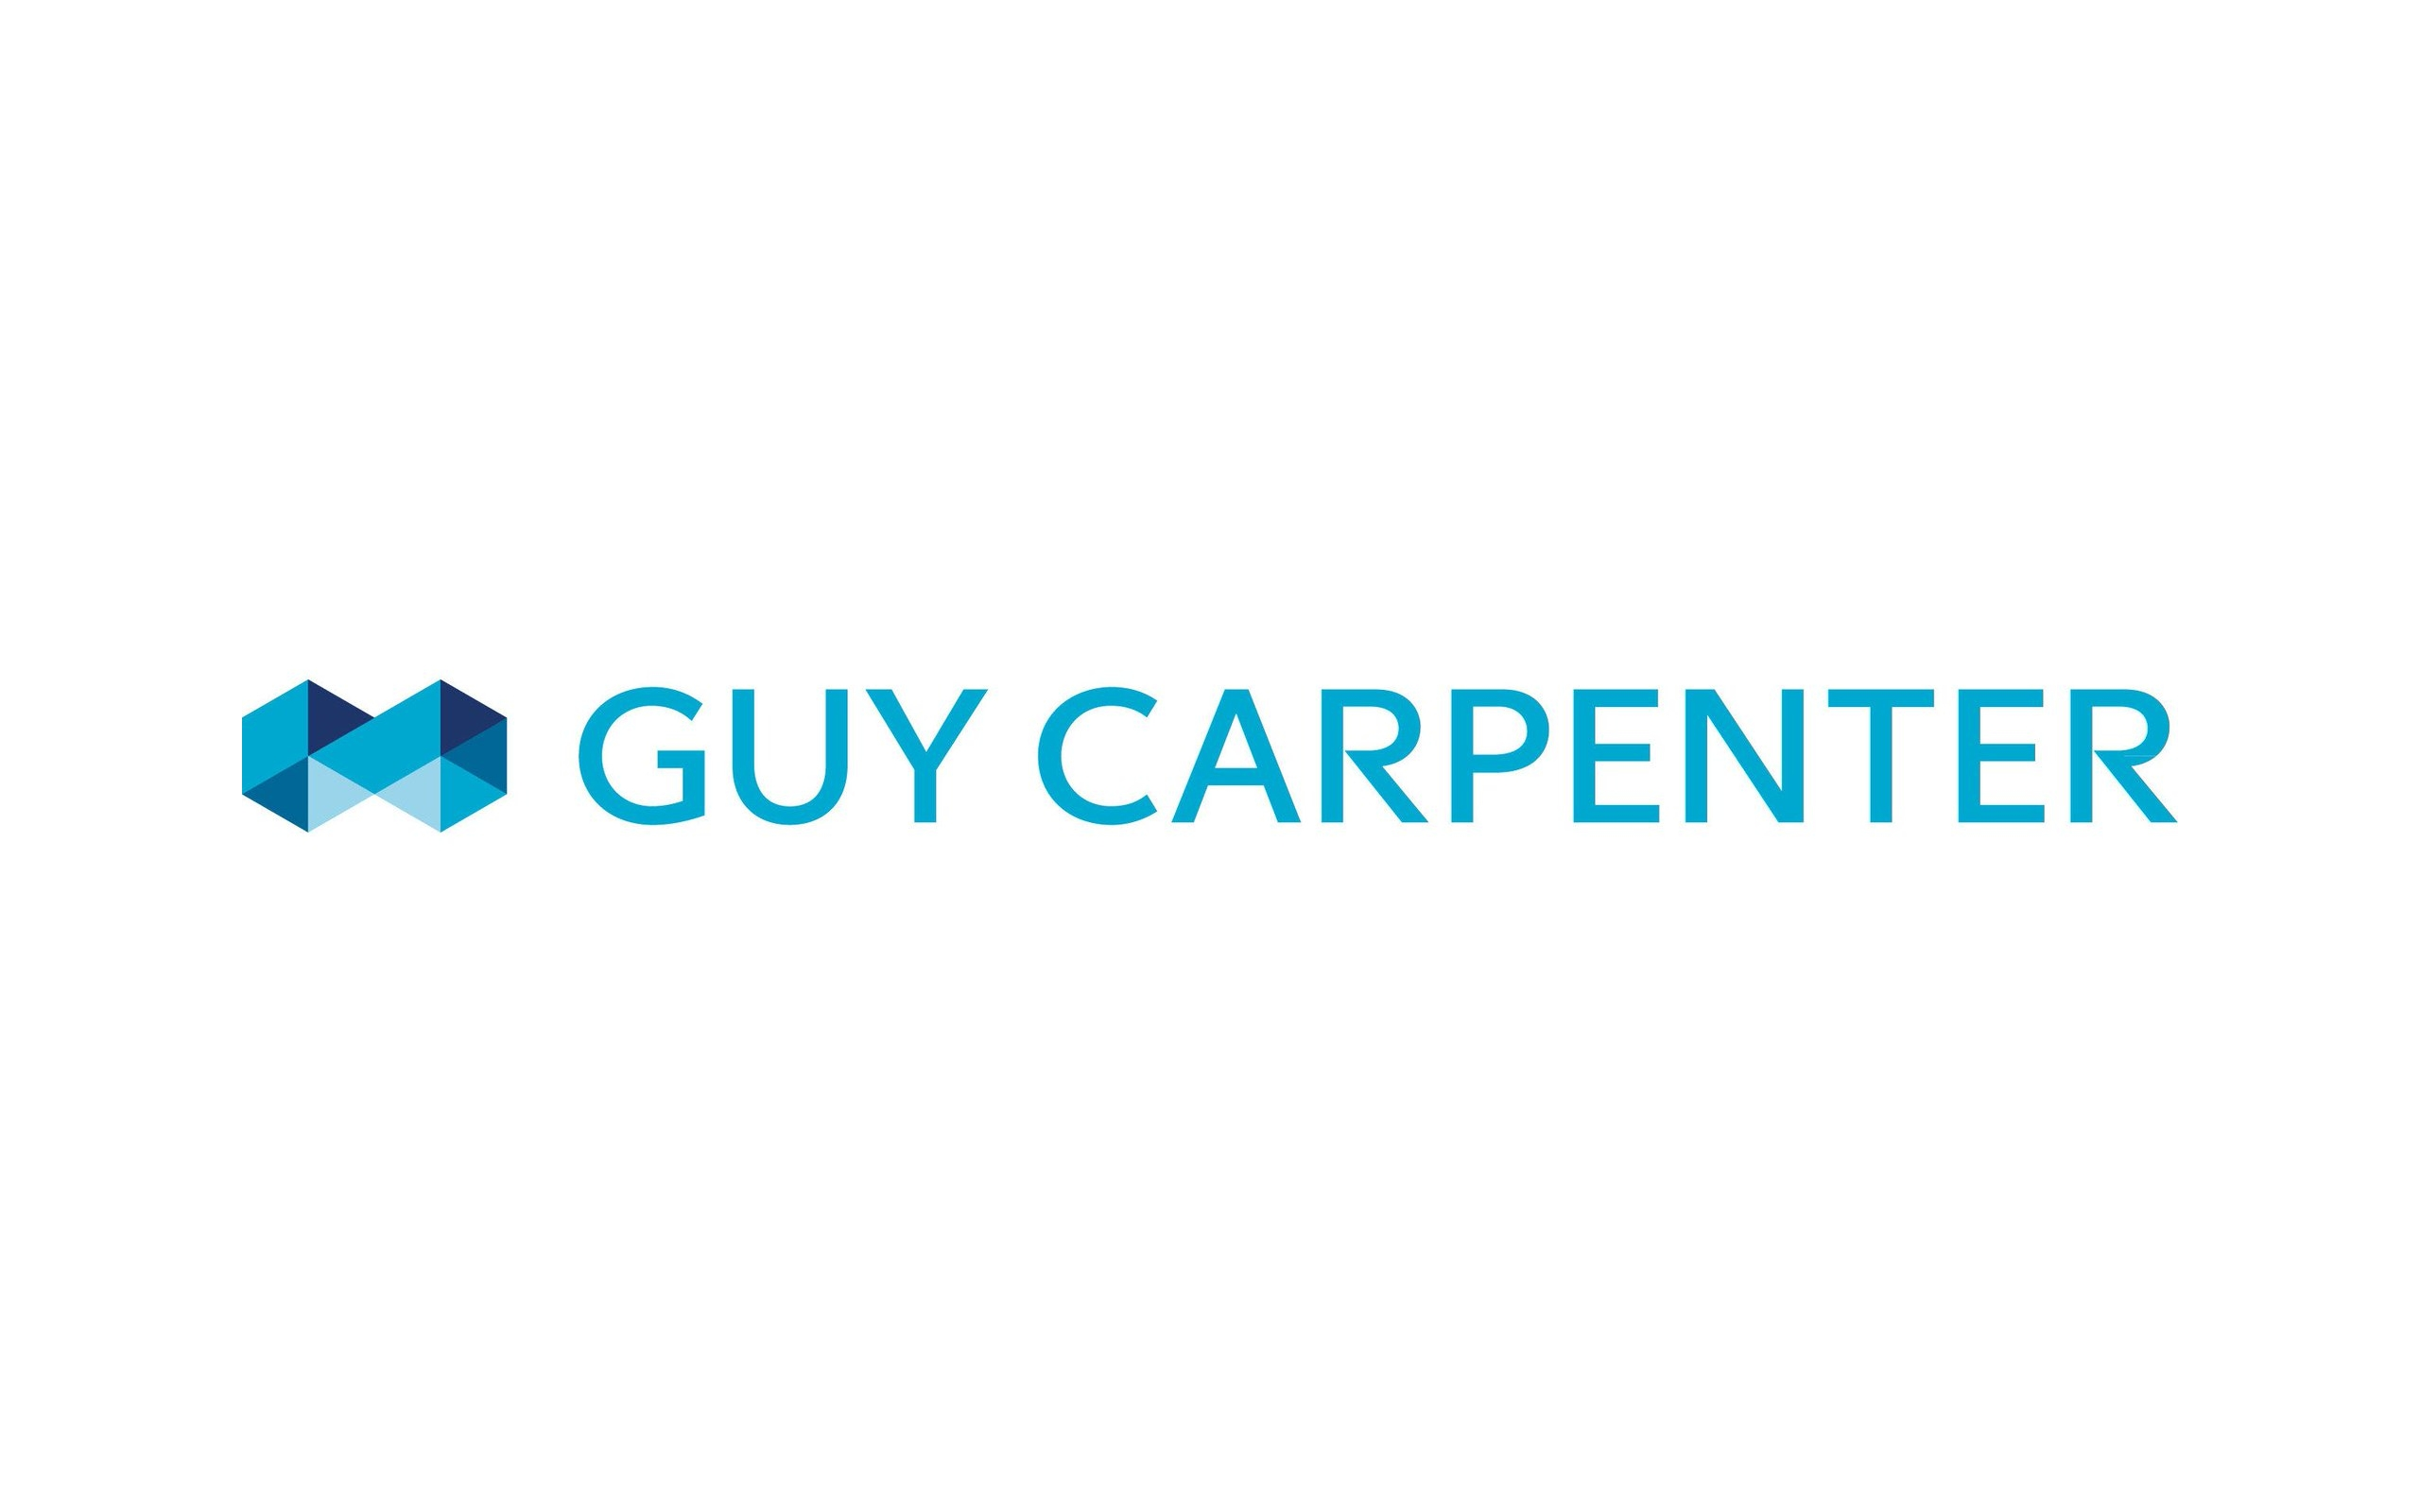 Guy Carpenter HiRes